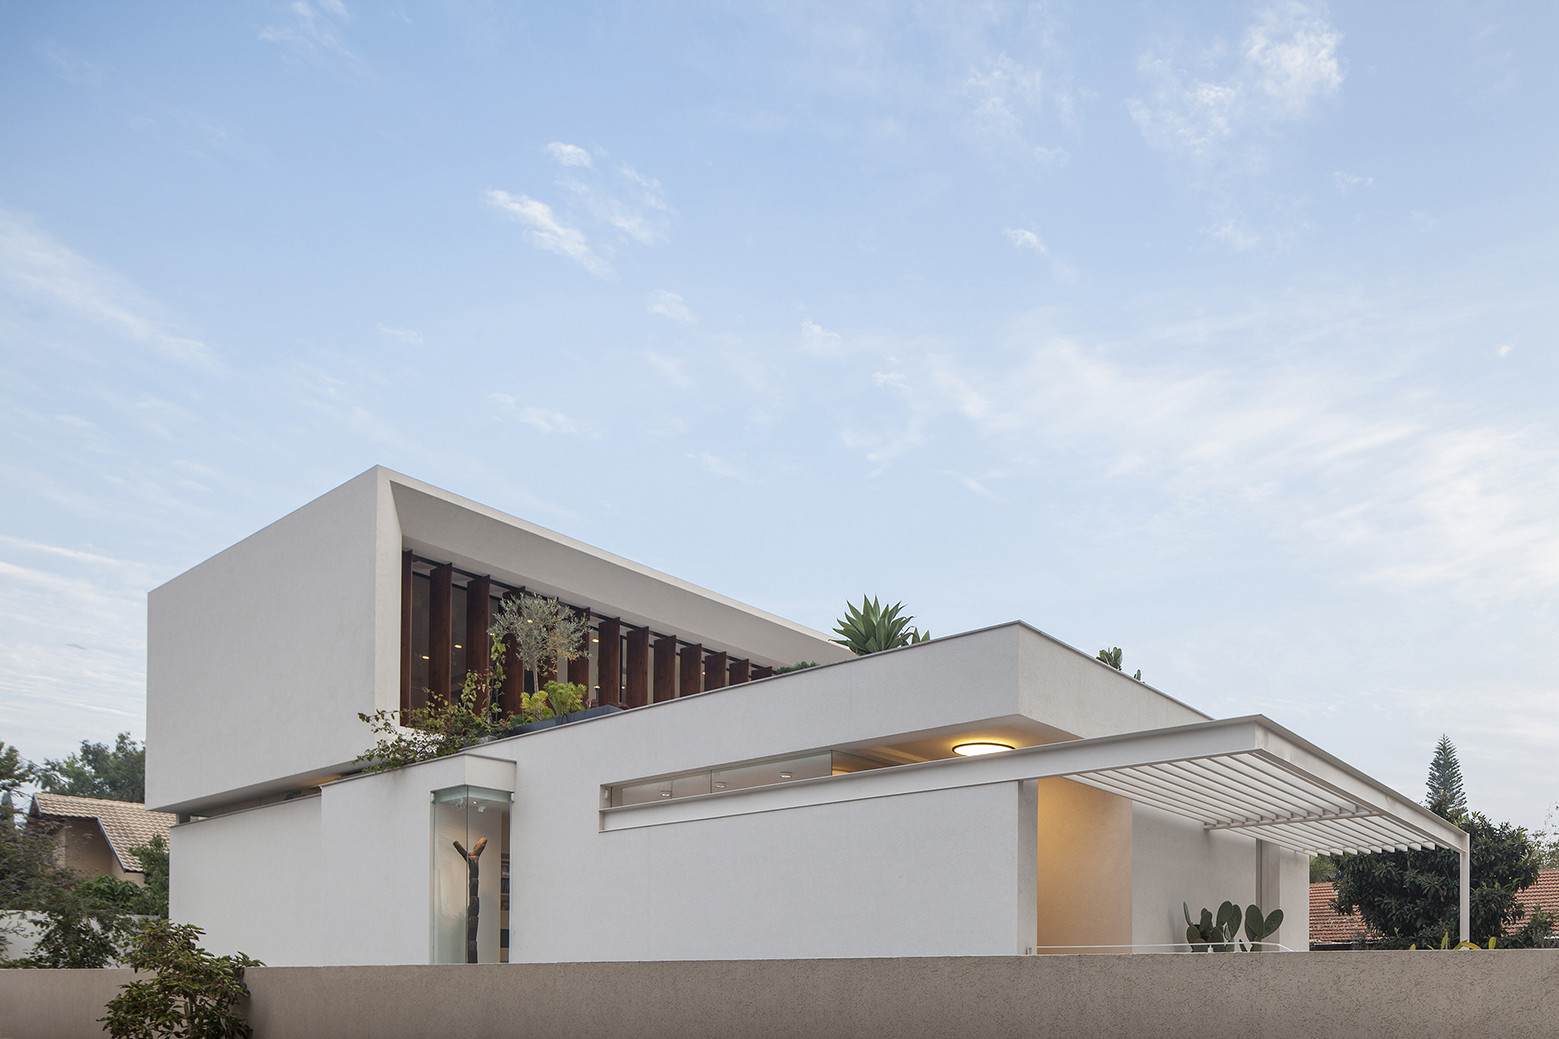 Gallery of mediterranean villa paz gersh architects 11 for Architecture 54